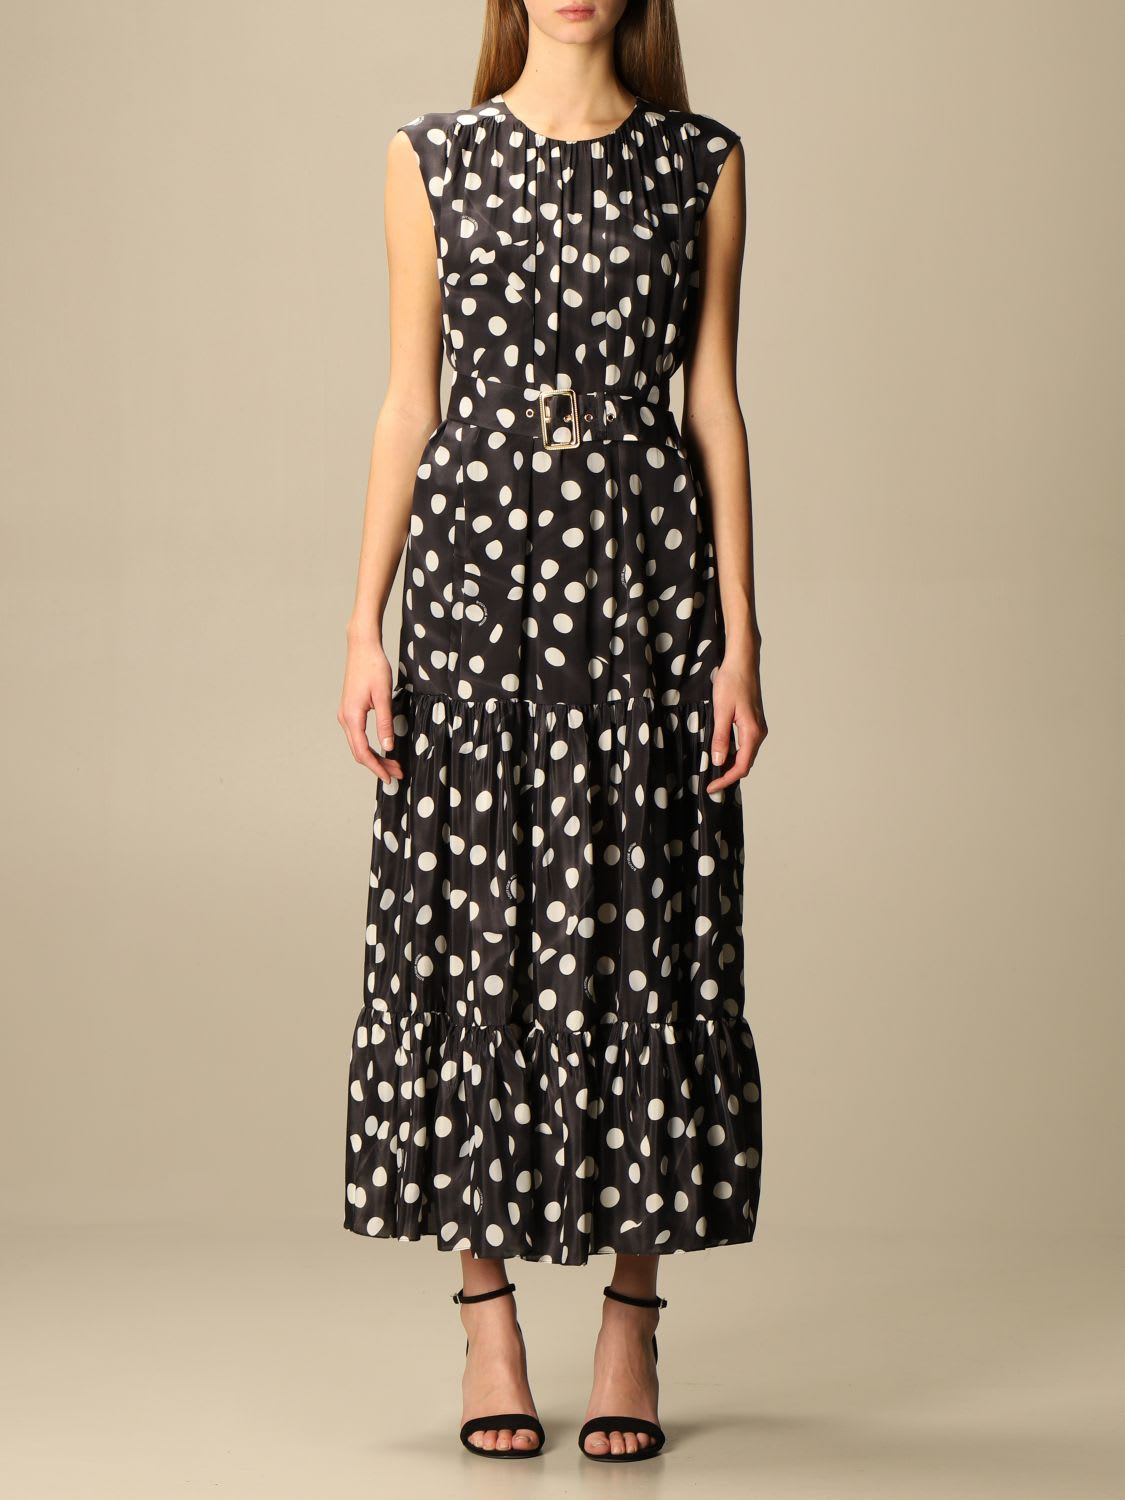 Boutique Moschino Dress Moschino Boutique Long Dress With Polka Dots